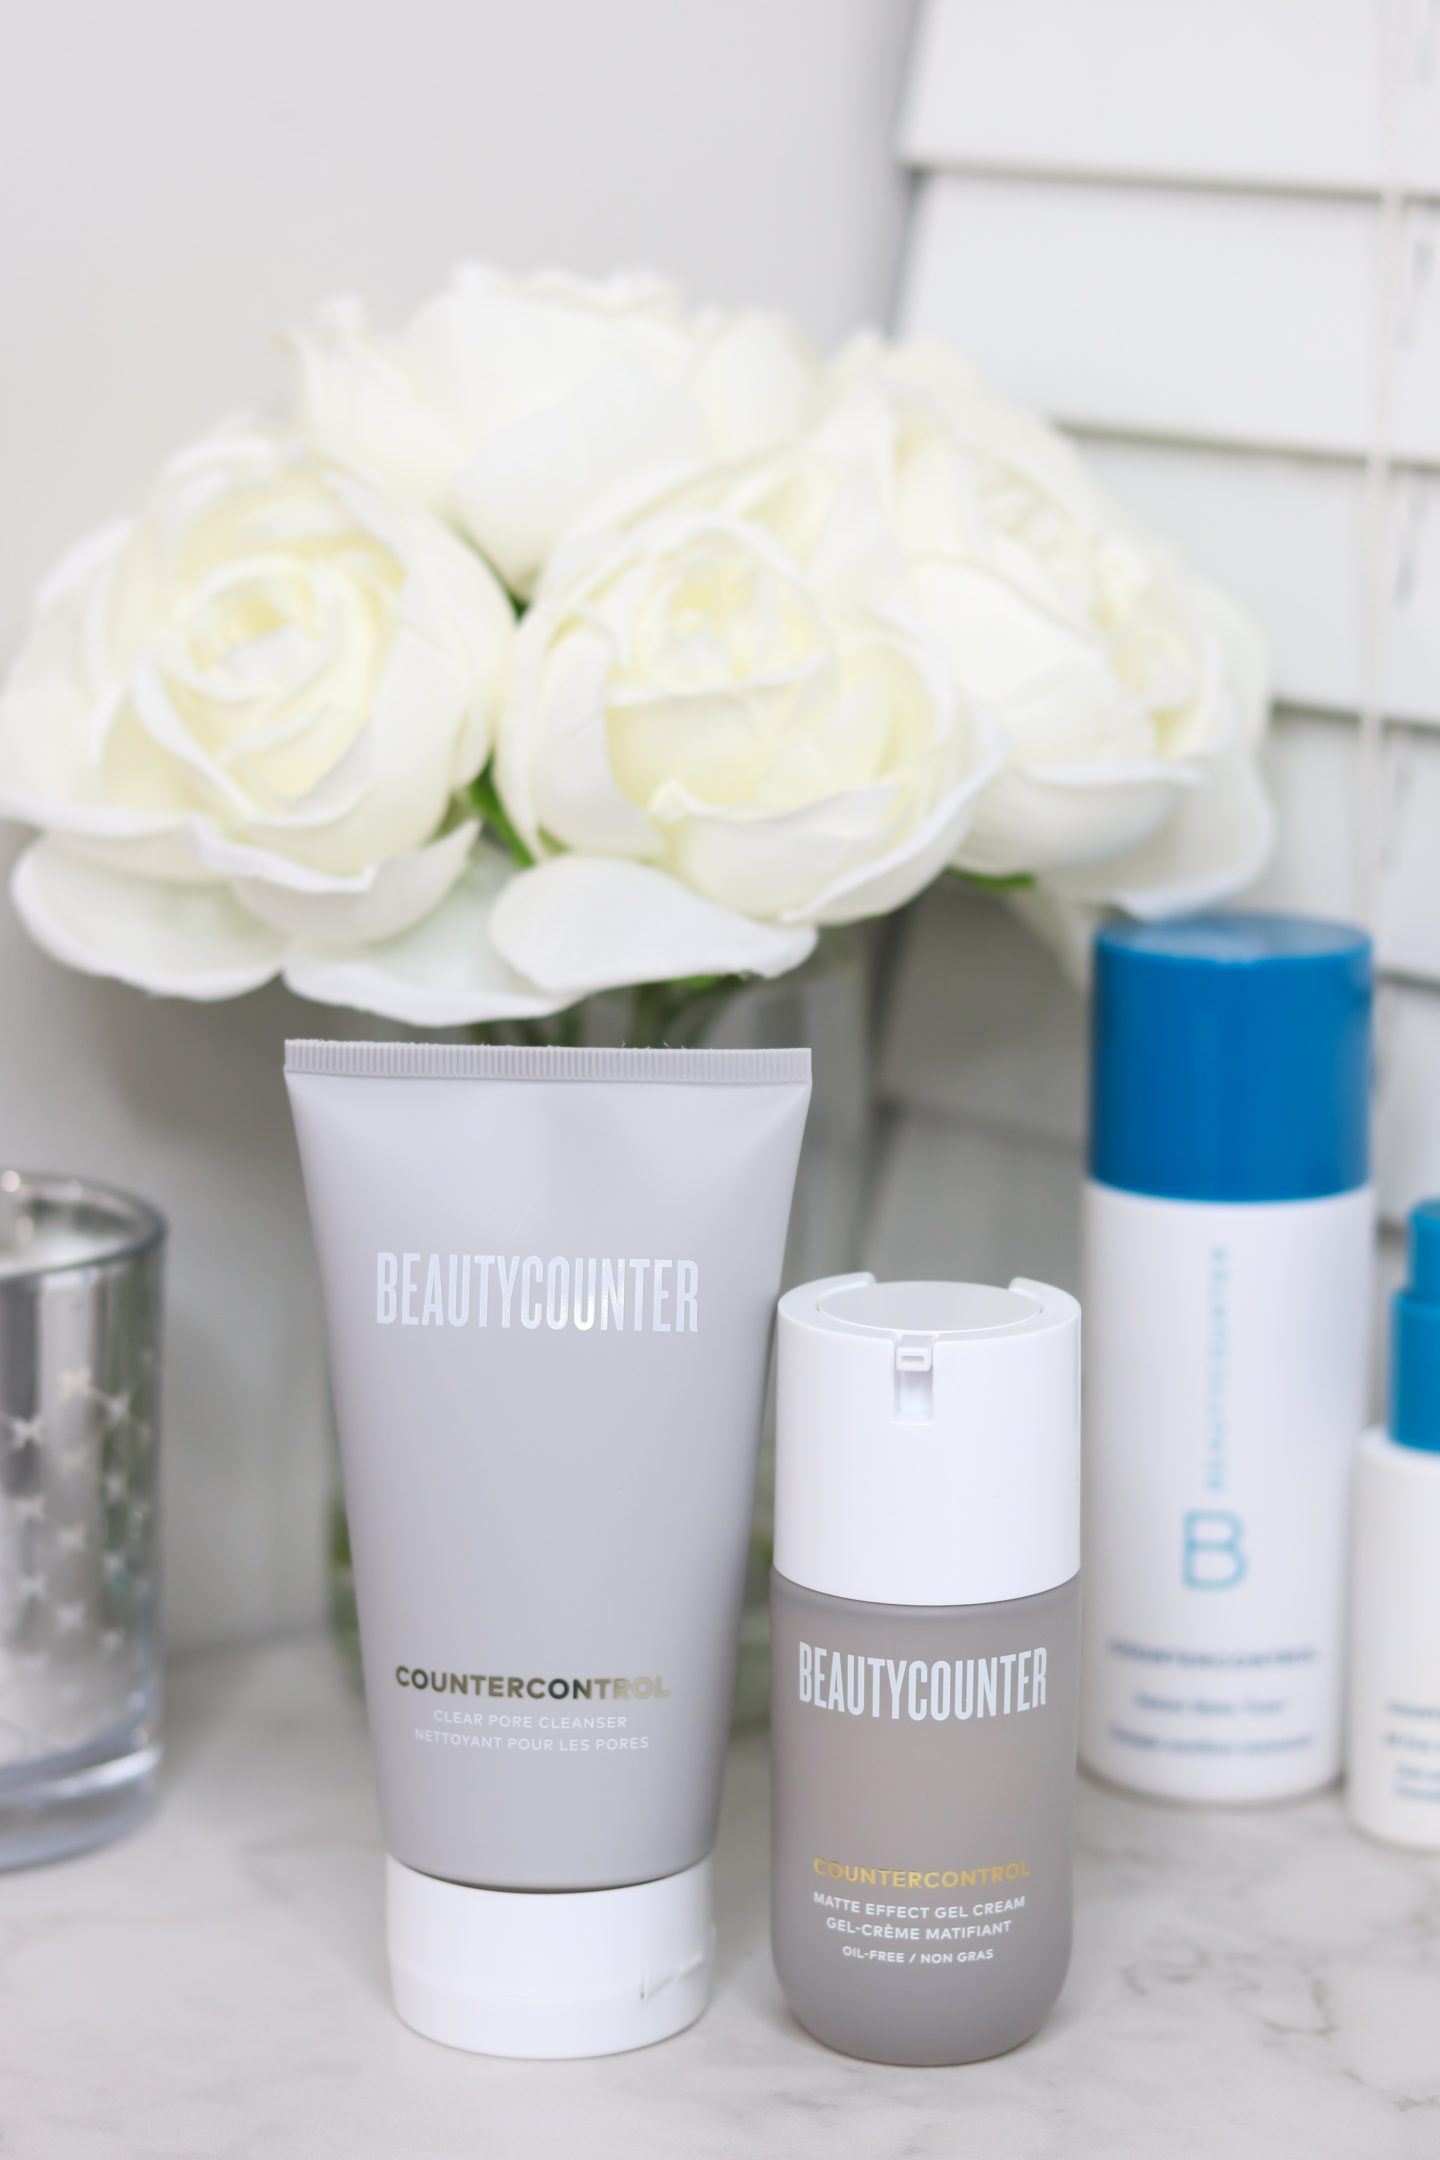 My 5 Favorite Beautycounter Skin Care Products | Beautycounter Countercontrol Acne Fighting Clean Skin Care Routine | Brighter Darling